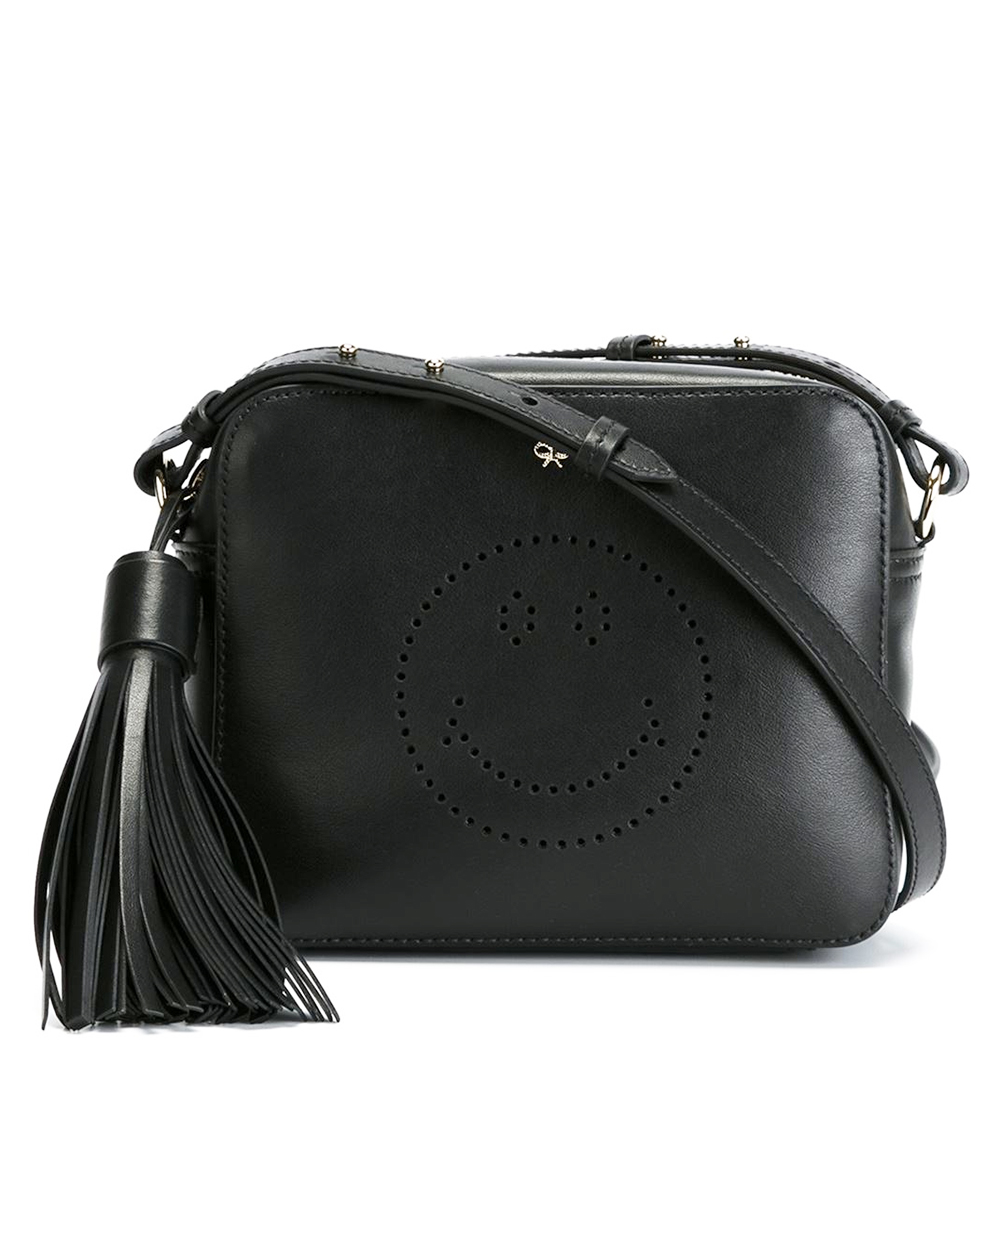 The-Bag-Freak-Anya-Hindmarch-Black-Smiley-Crossbody